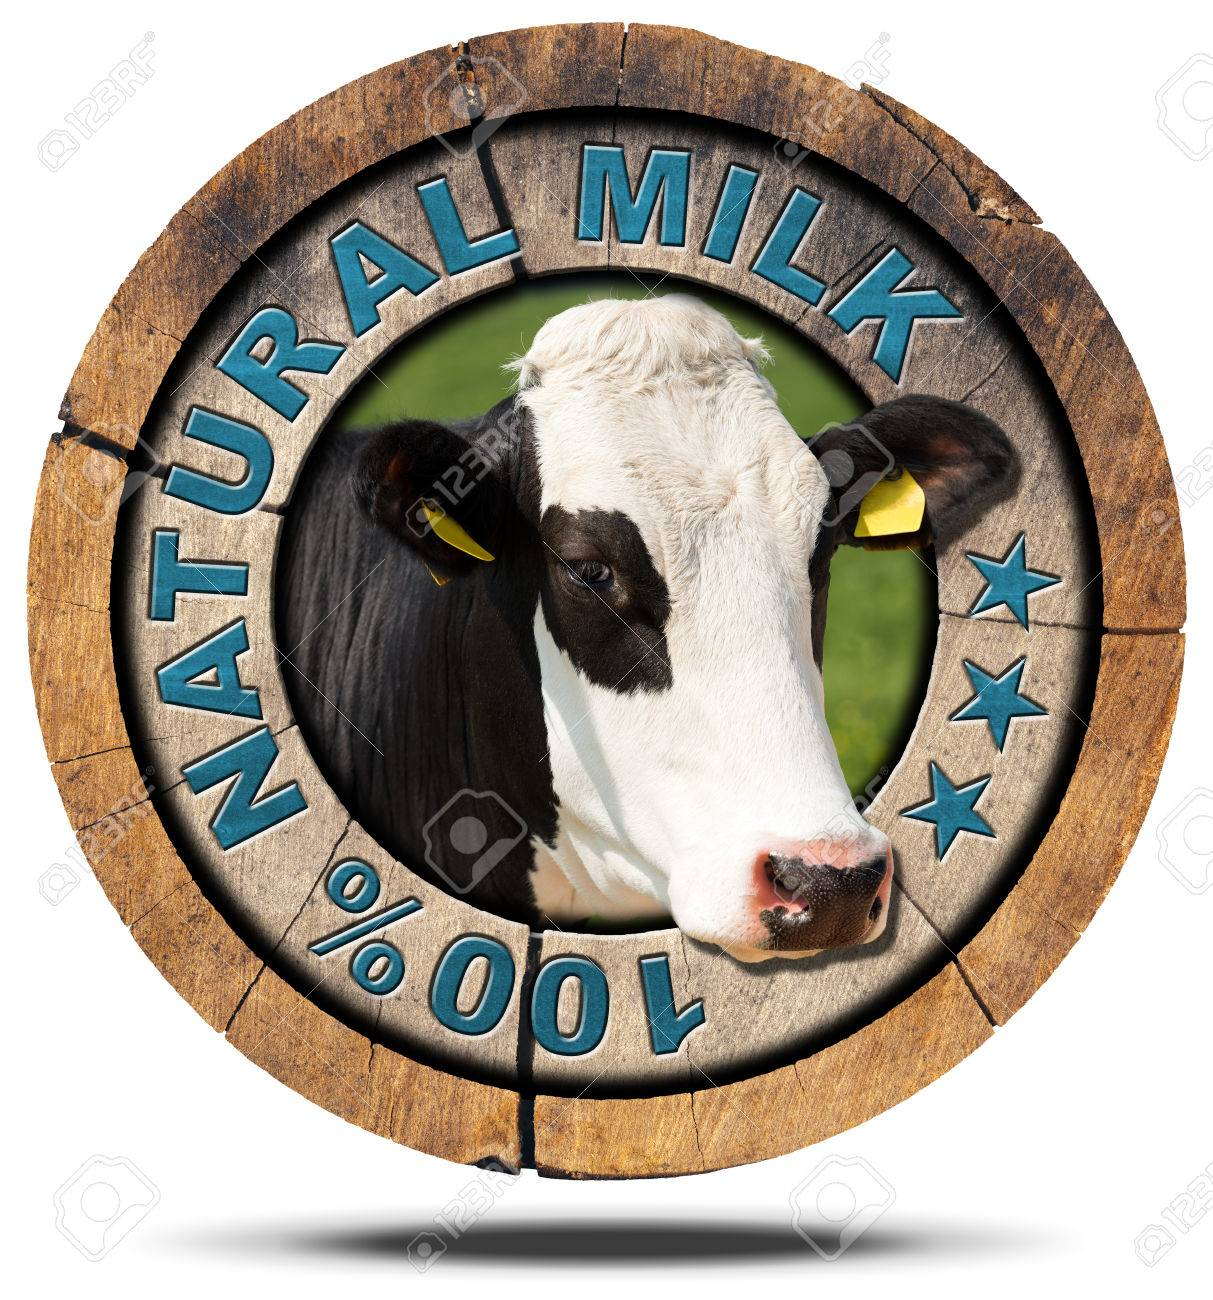 Wooden round icon or symbol with head of cow and text 100 natural wooden round icon or symbol with head of cow and text 100 natural milk isolated buycottarizona Image collections